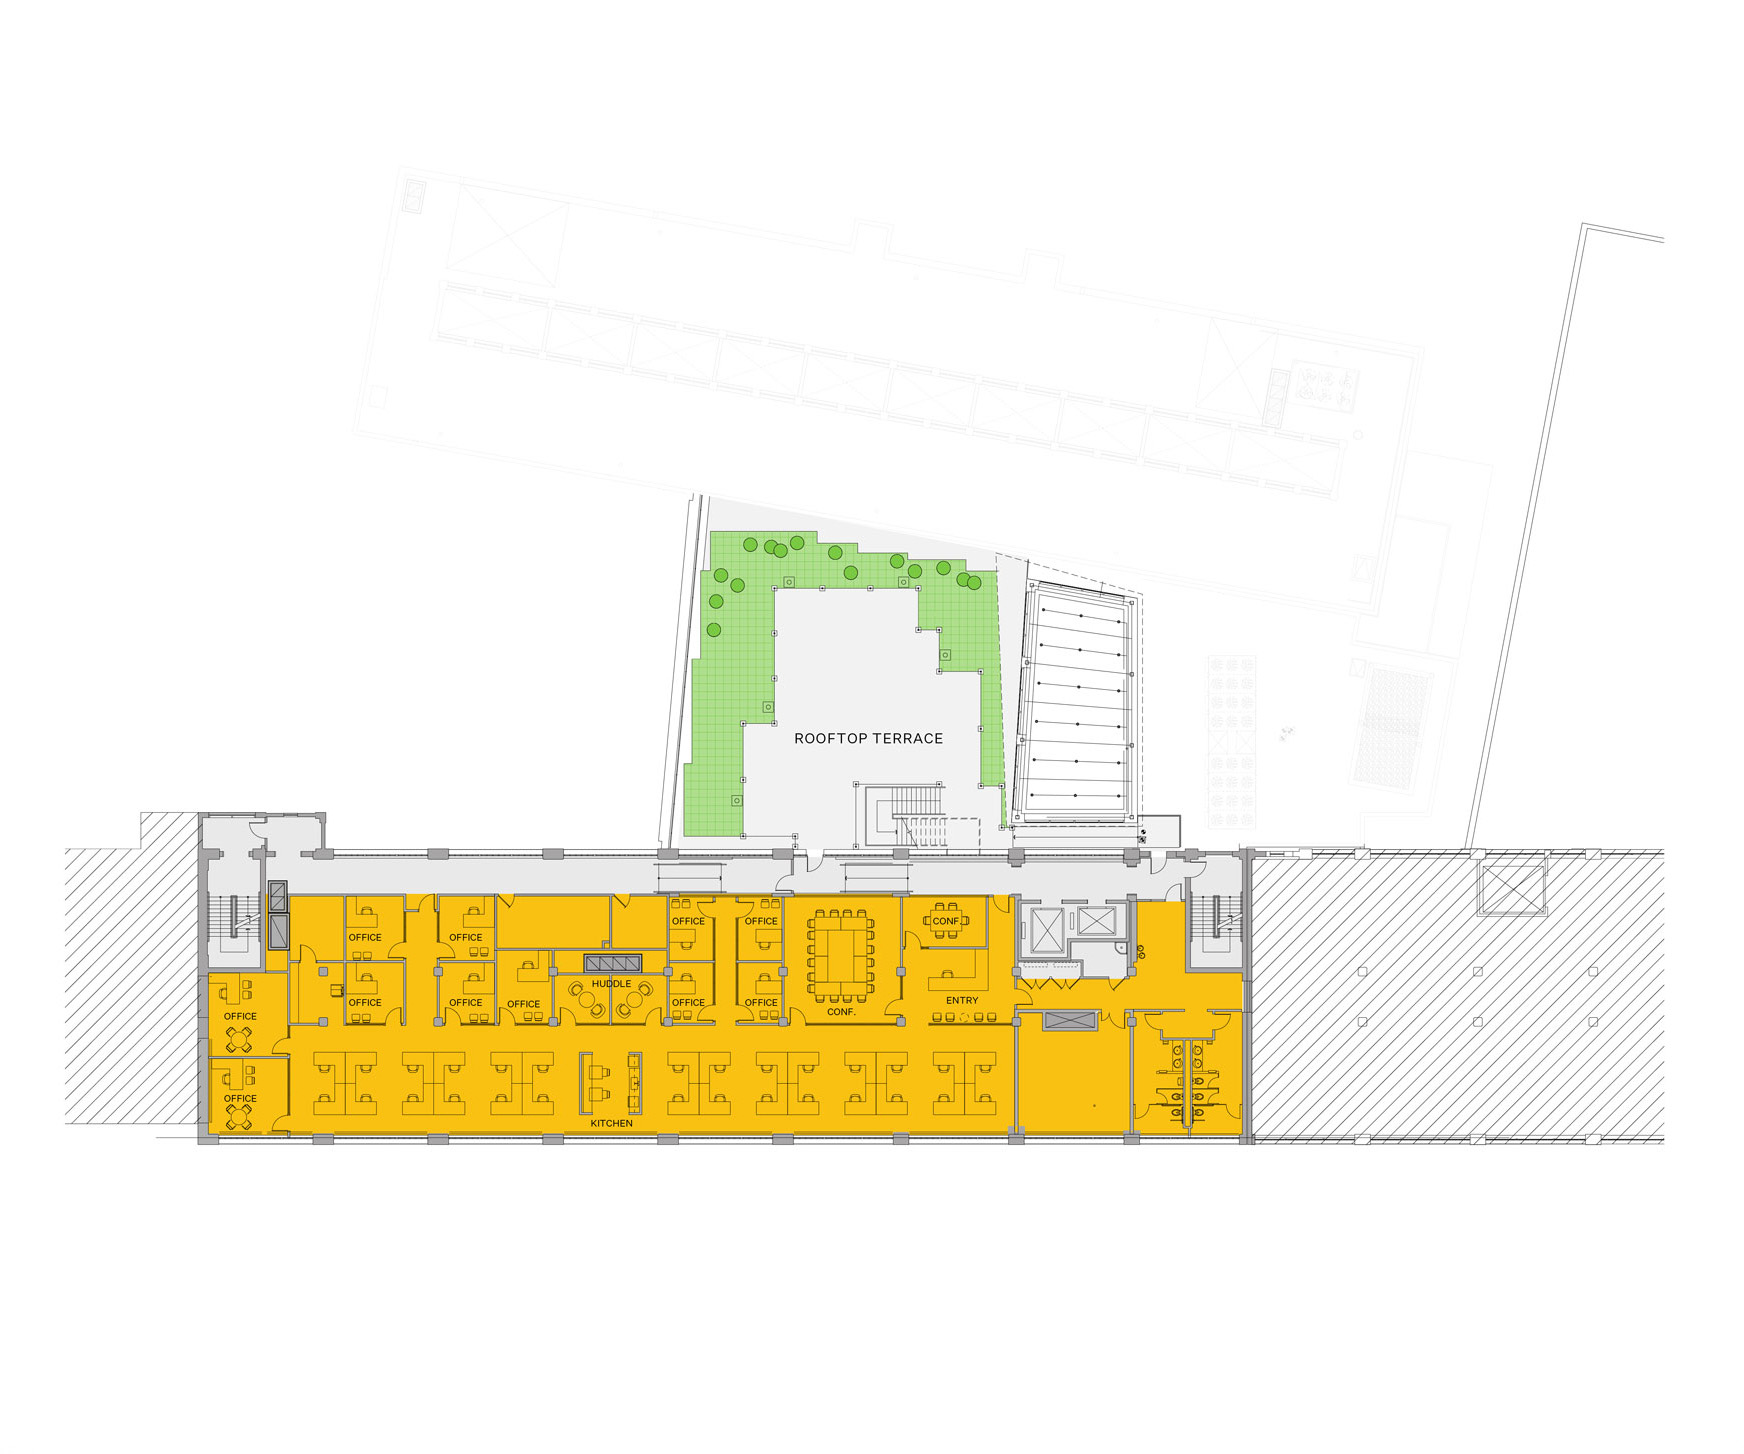 Blueprint layout of Winchester campus level 5